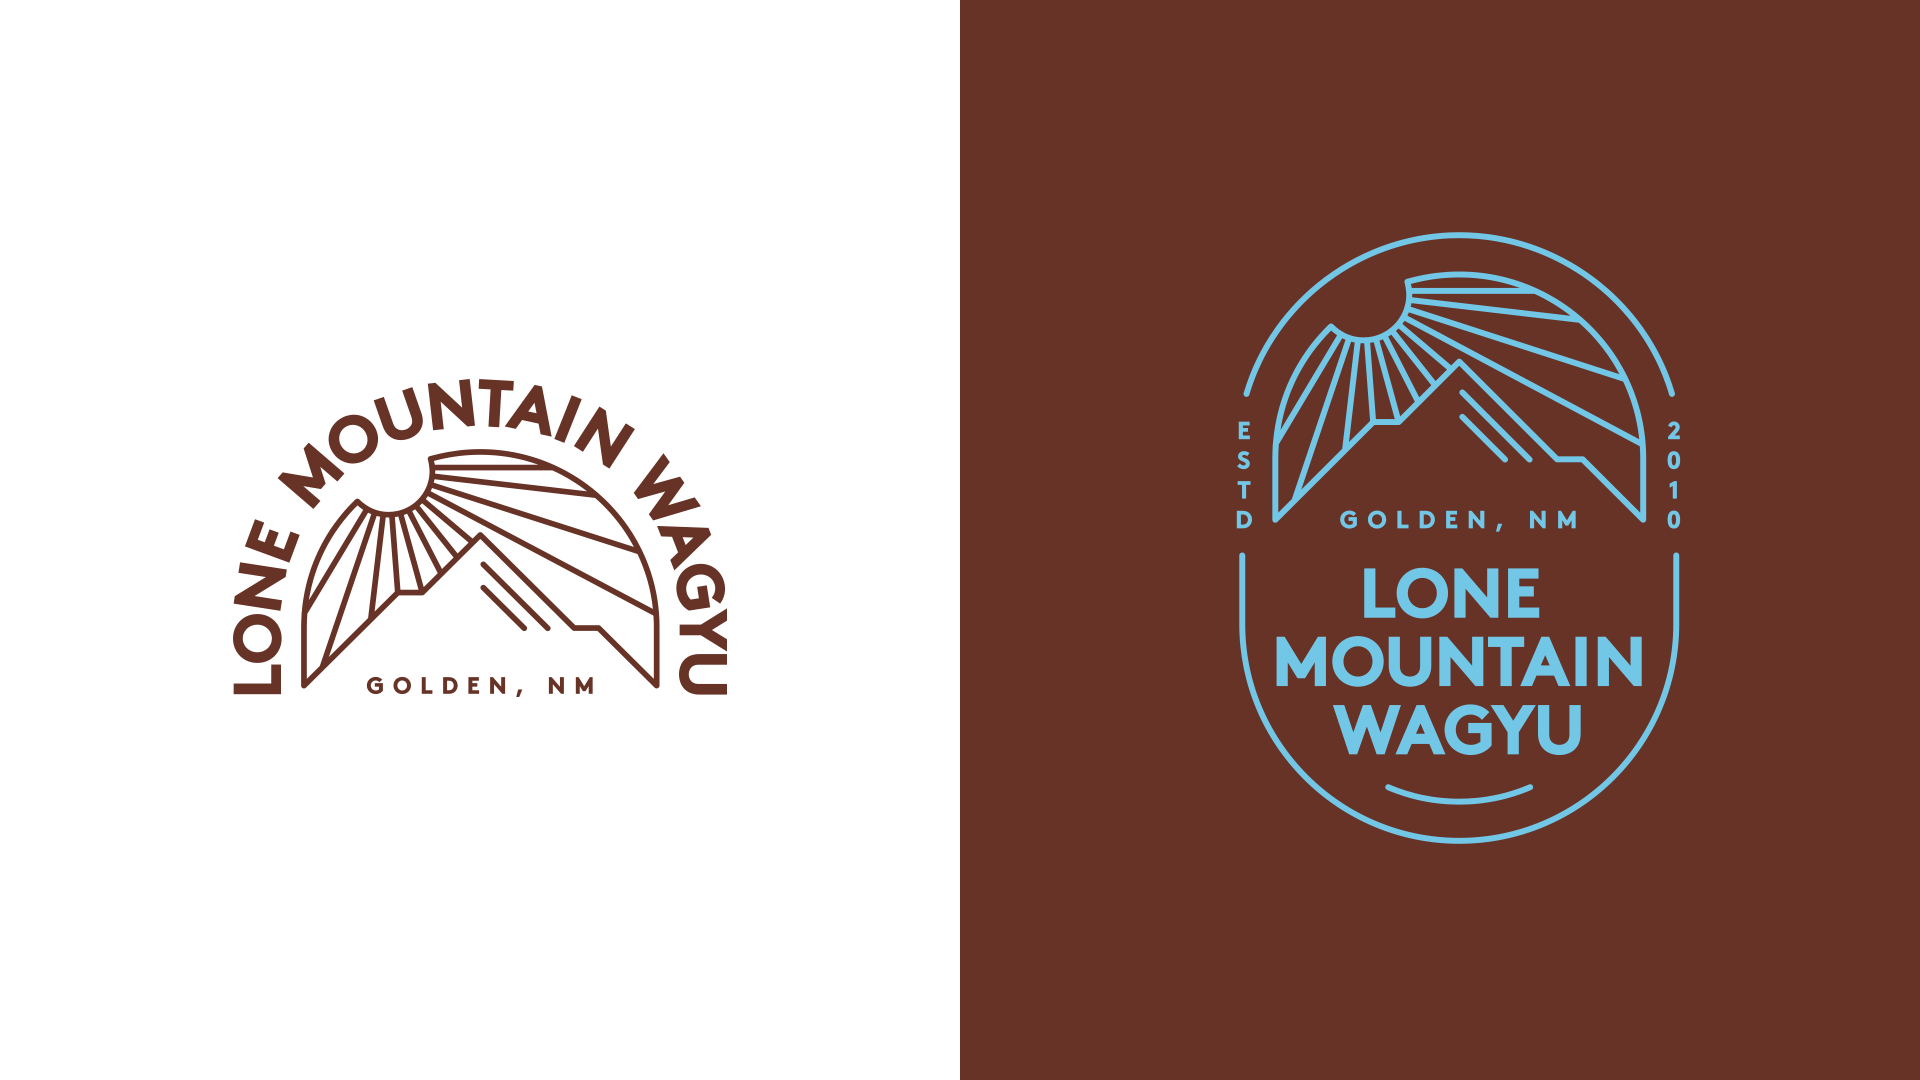 Eat Life to the Fullest branding logo for Lone Mountain Wagyu by Tom Morhous and Remo+Oob, Ltd.